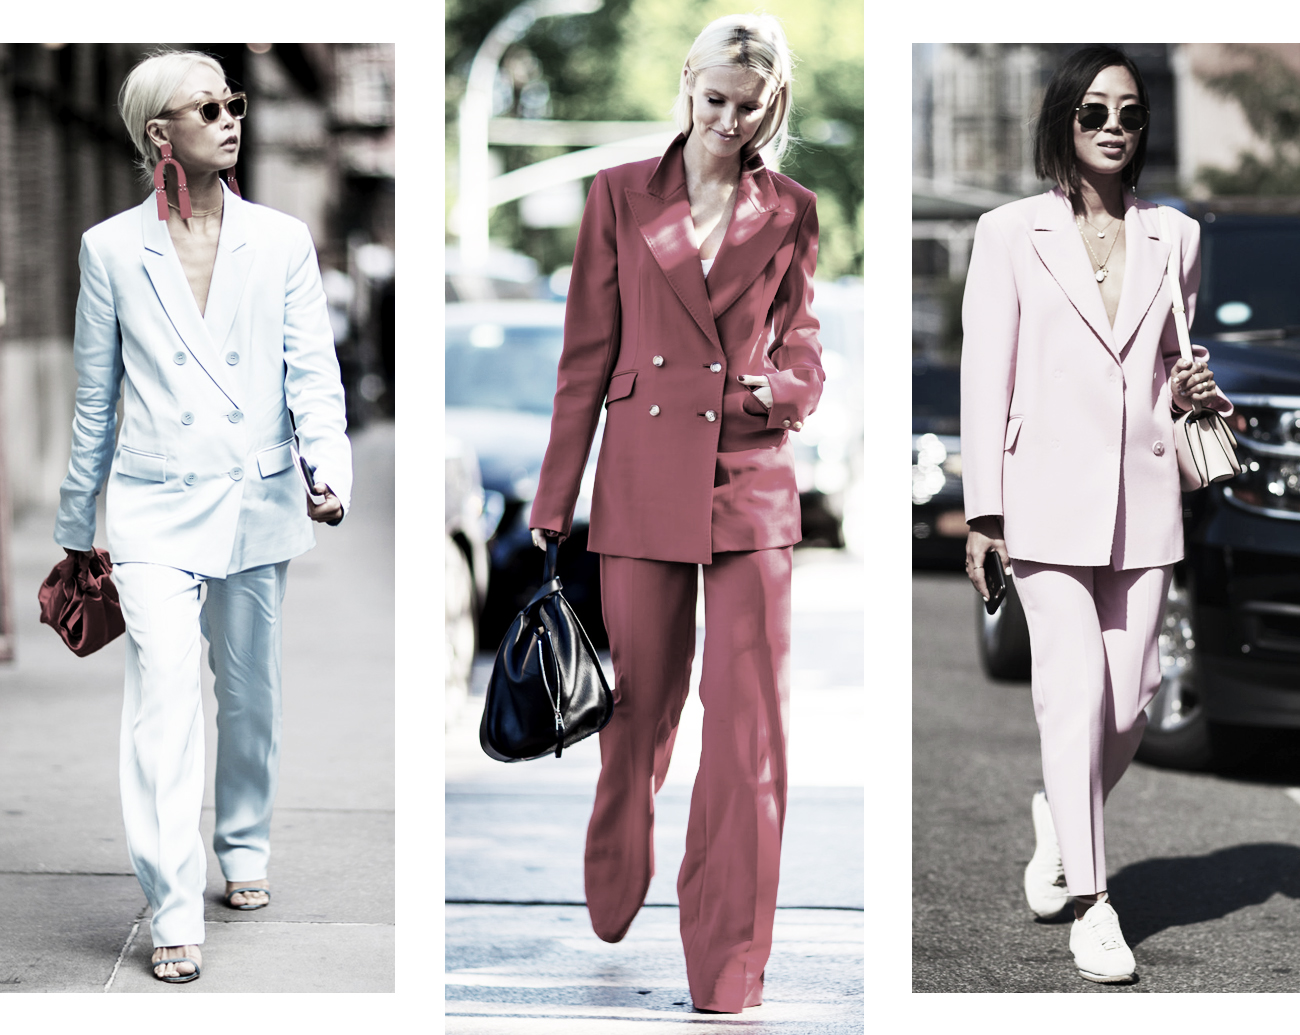 DISTRICT F - NEW YORK STREET STYLE SS18 double-breasted suits trend